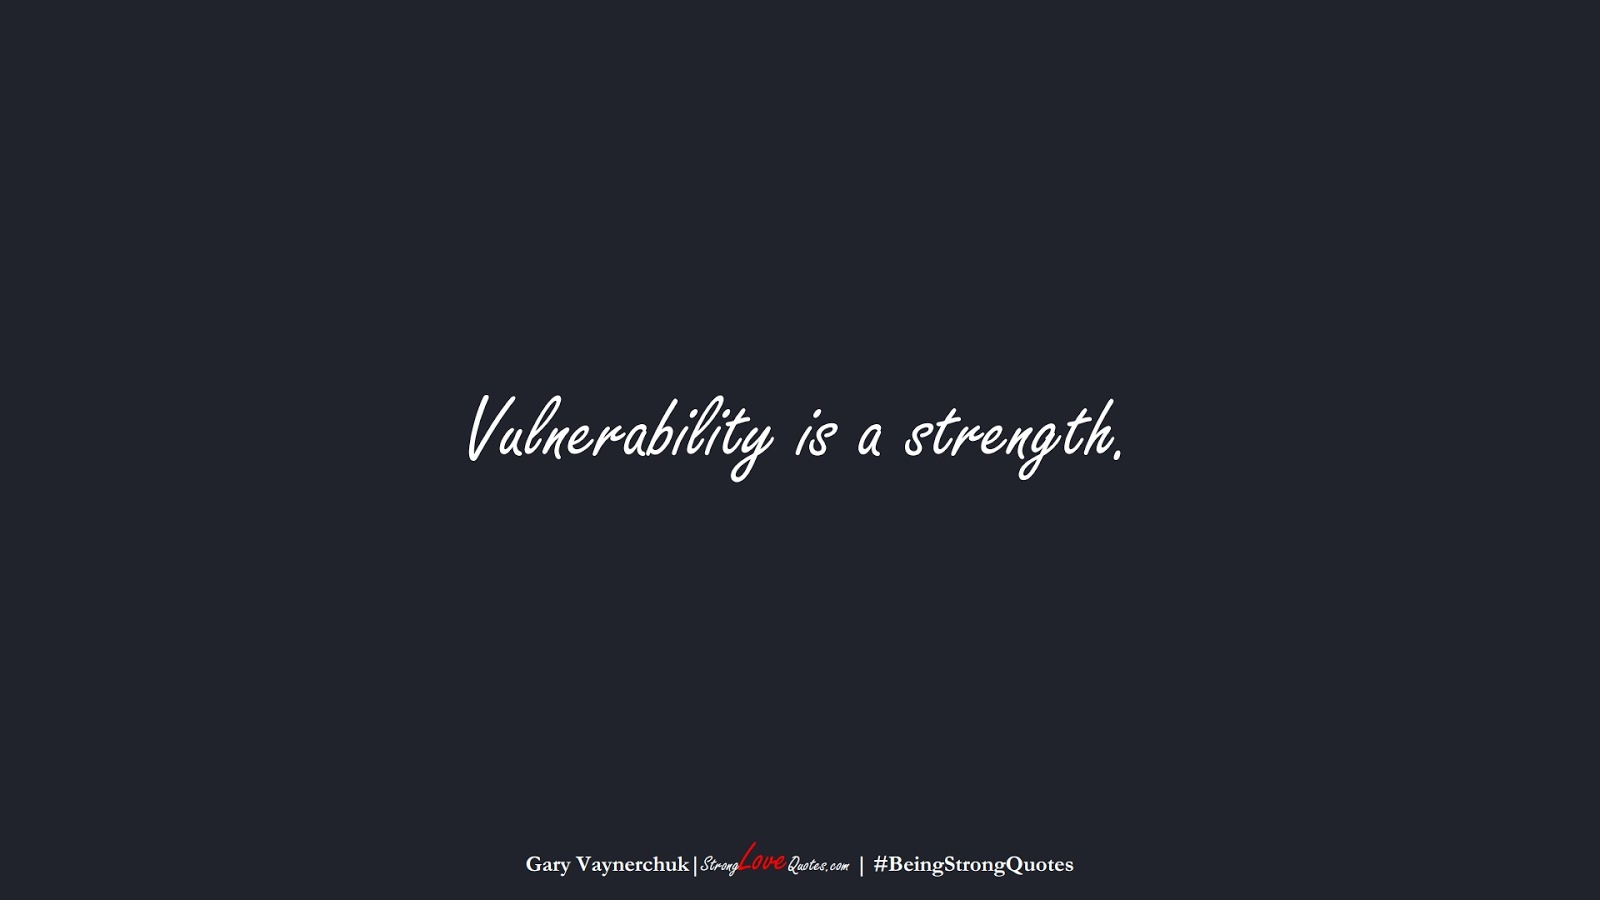 Vulnerability is a strength. (Gary Vaynerchuk);  #BeingStrongQuotes